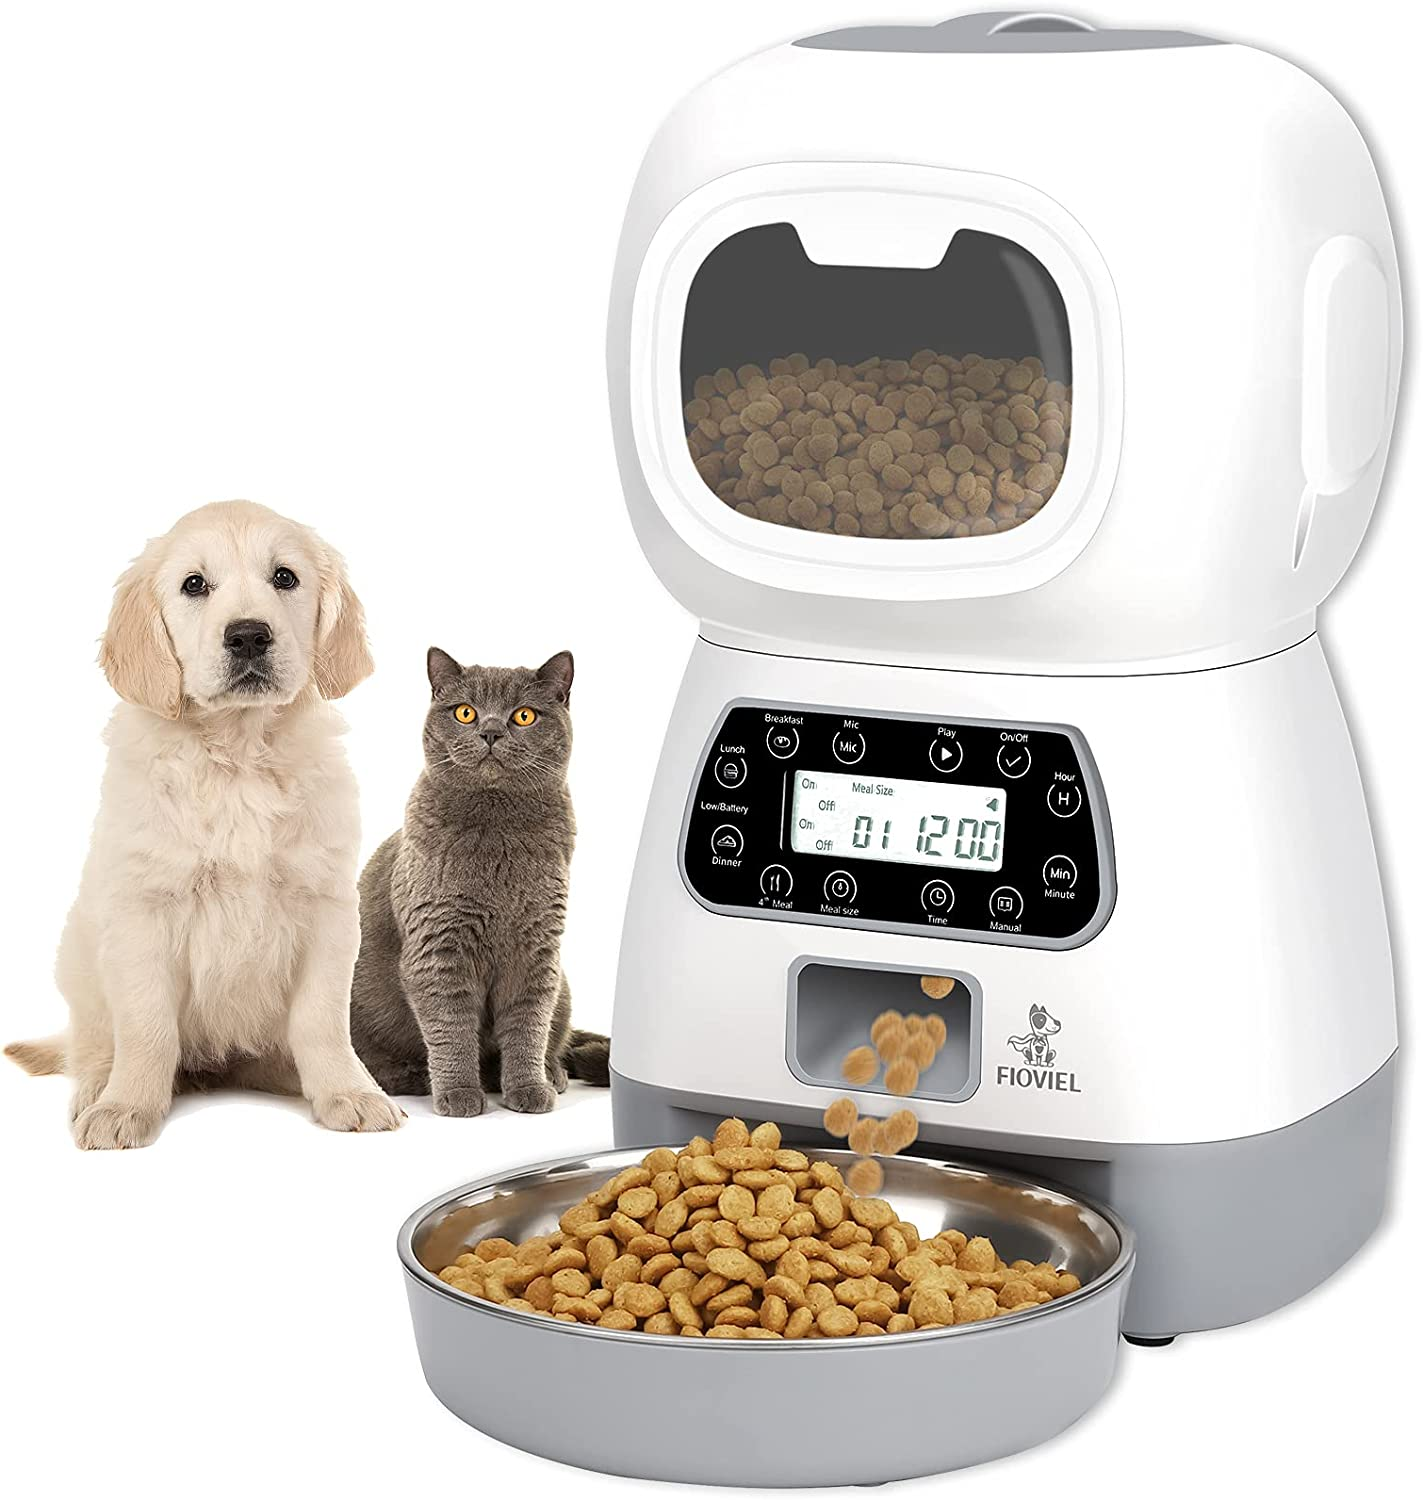 FIOVIEL Automatic Cat Feeder, 3.5L Pet Food Dispenser for Cats and Dogs, Timed Cat Feeder with Twist Lock Lid, Visible Window and Memory Function, Programmable 1-4 Meals per Day & 10s Voice Recorder